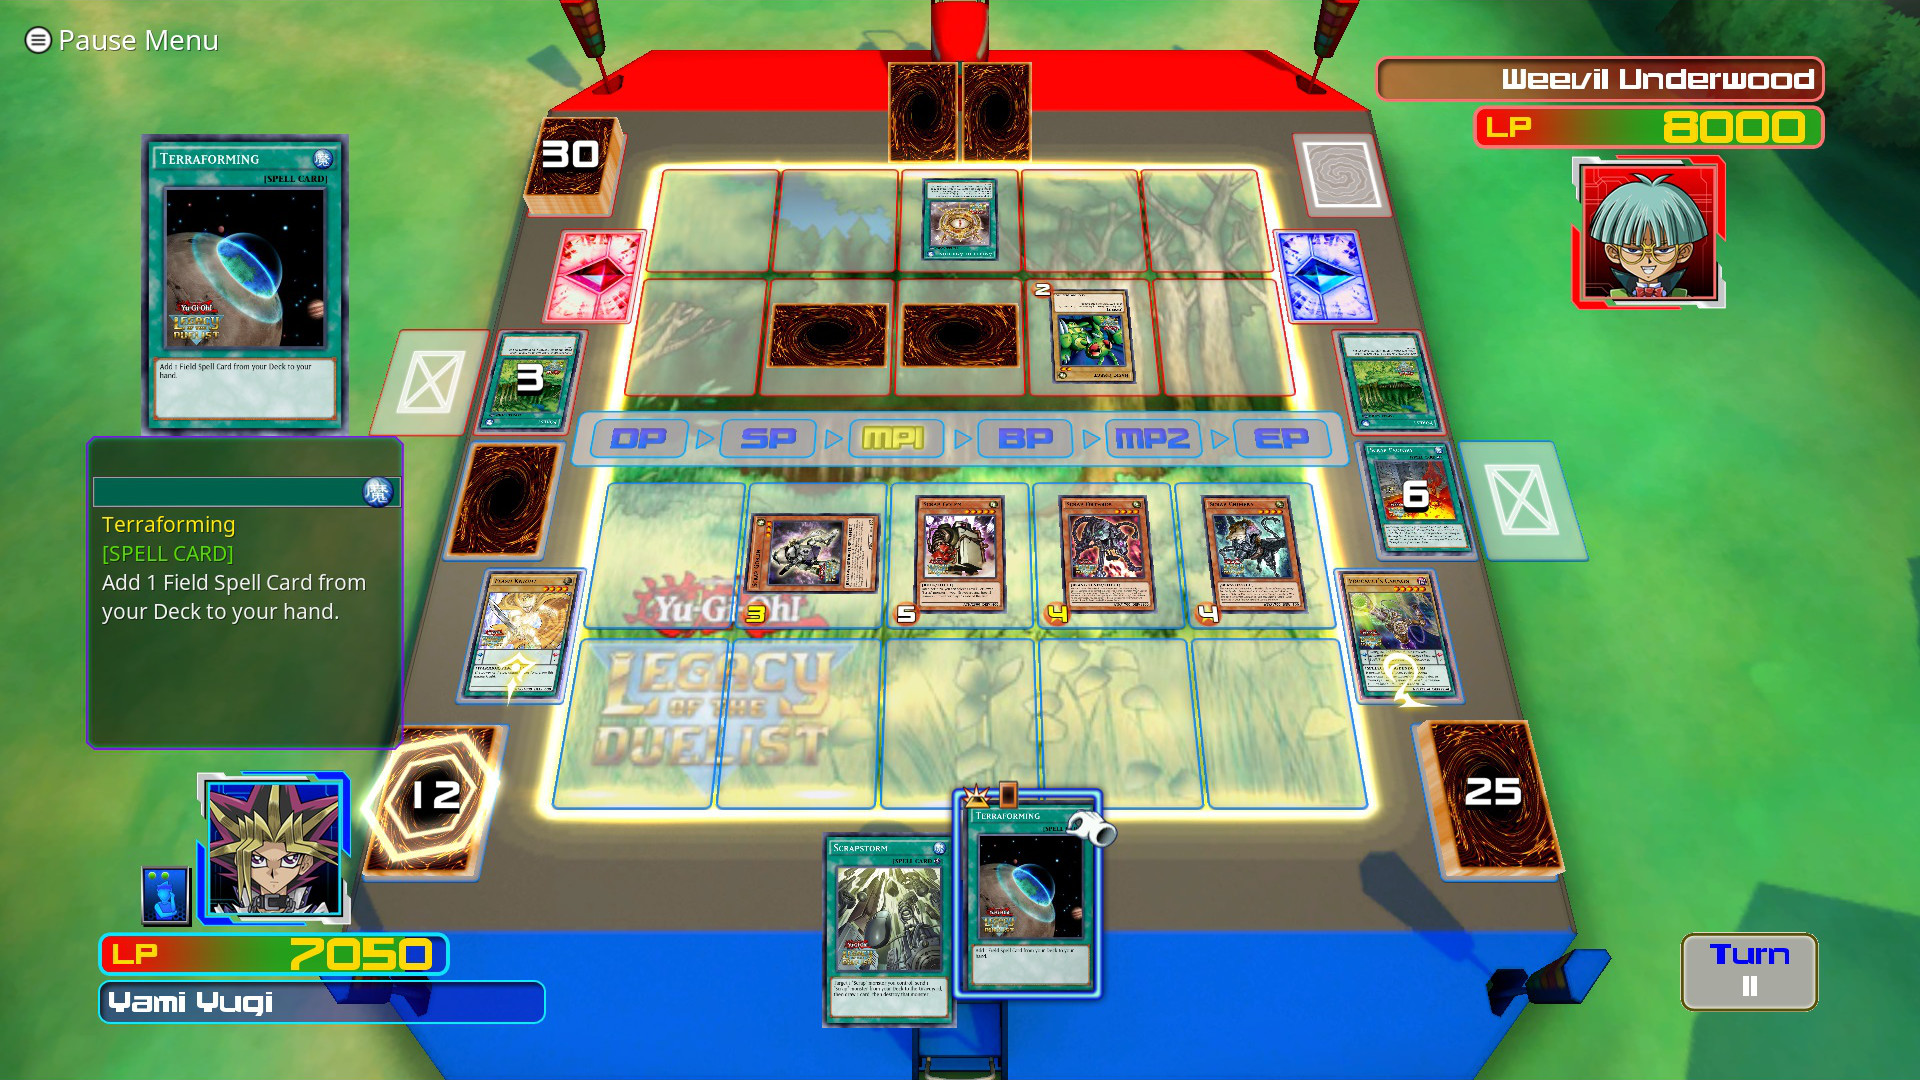 YU-GI-OH PASSION CHAOS POWER JOEY GRATUITEMENT OF THE TÉLÉCHARGER